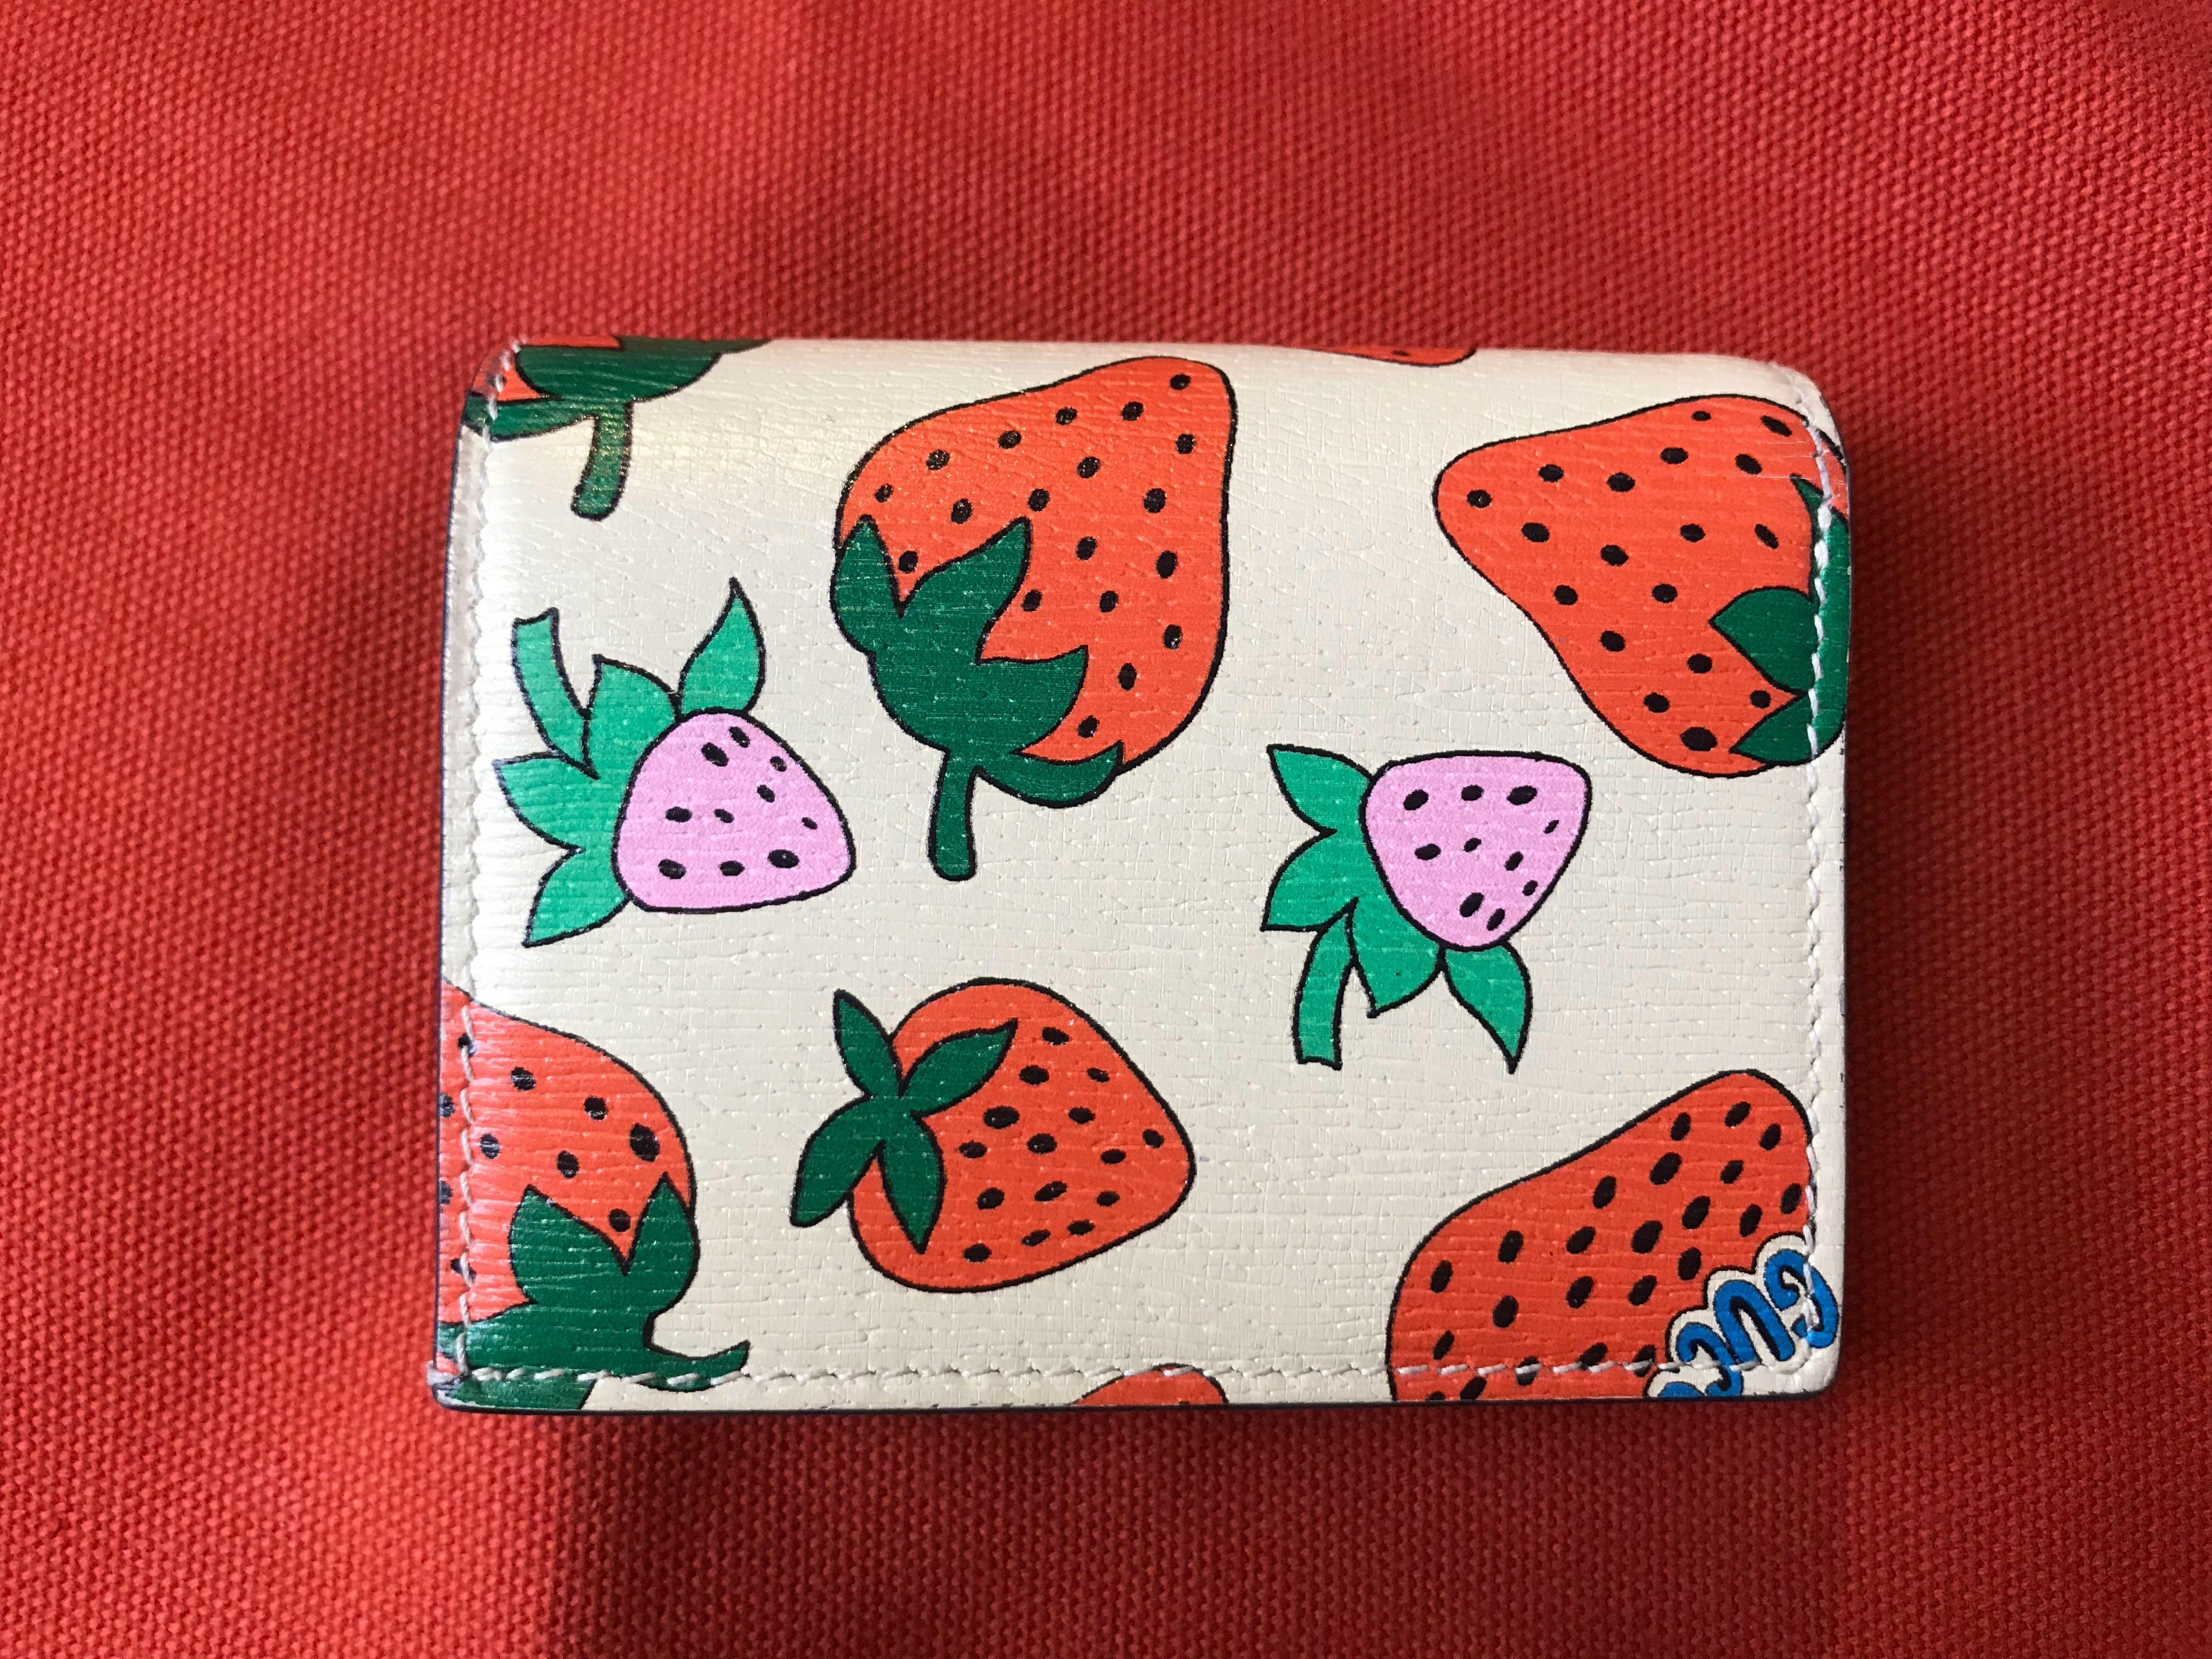 Gucci Strawberry Print Zumi compact wallet limited edition